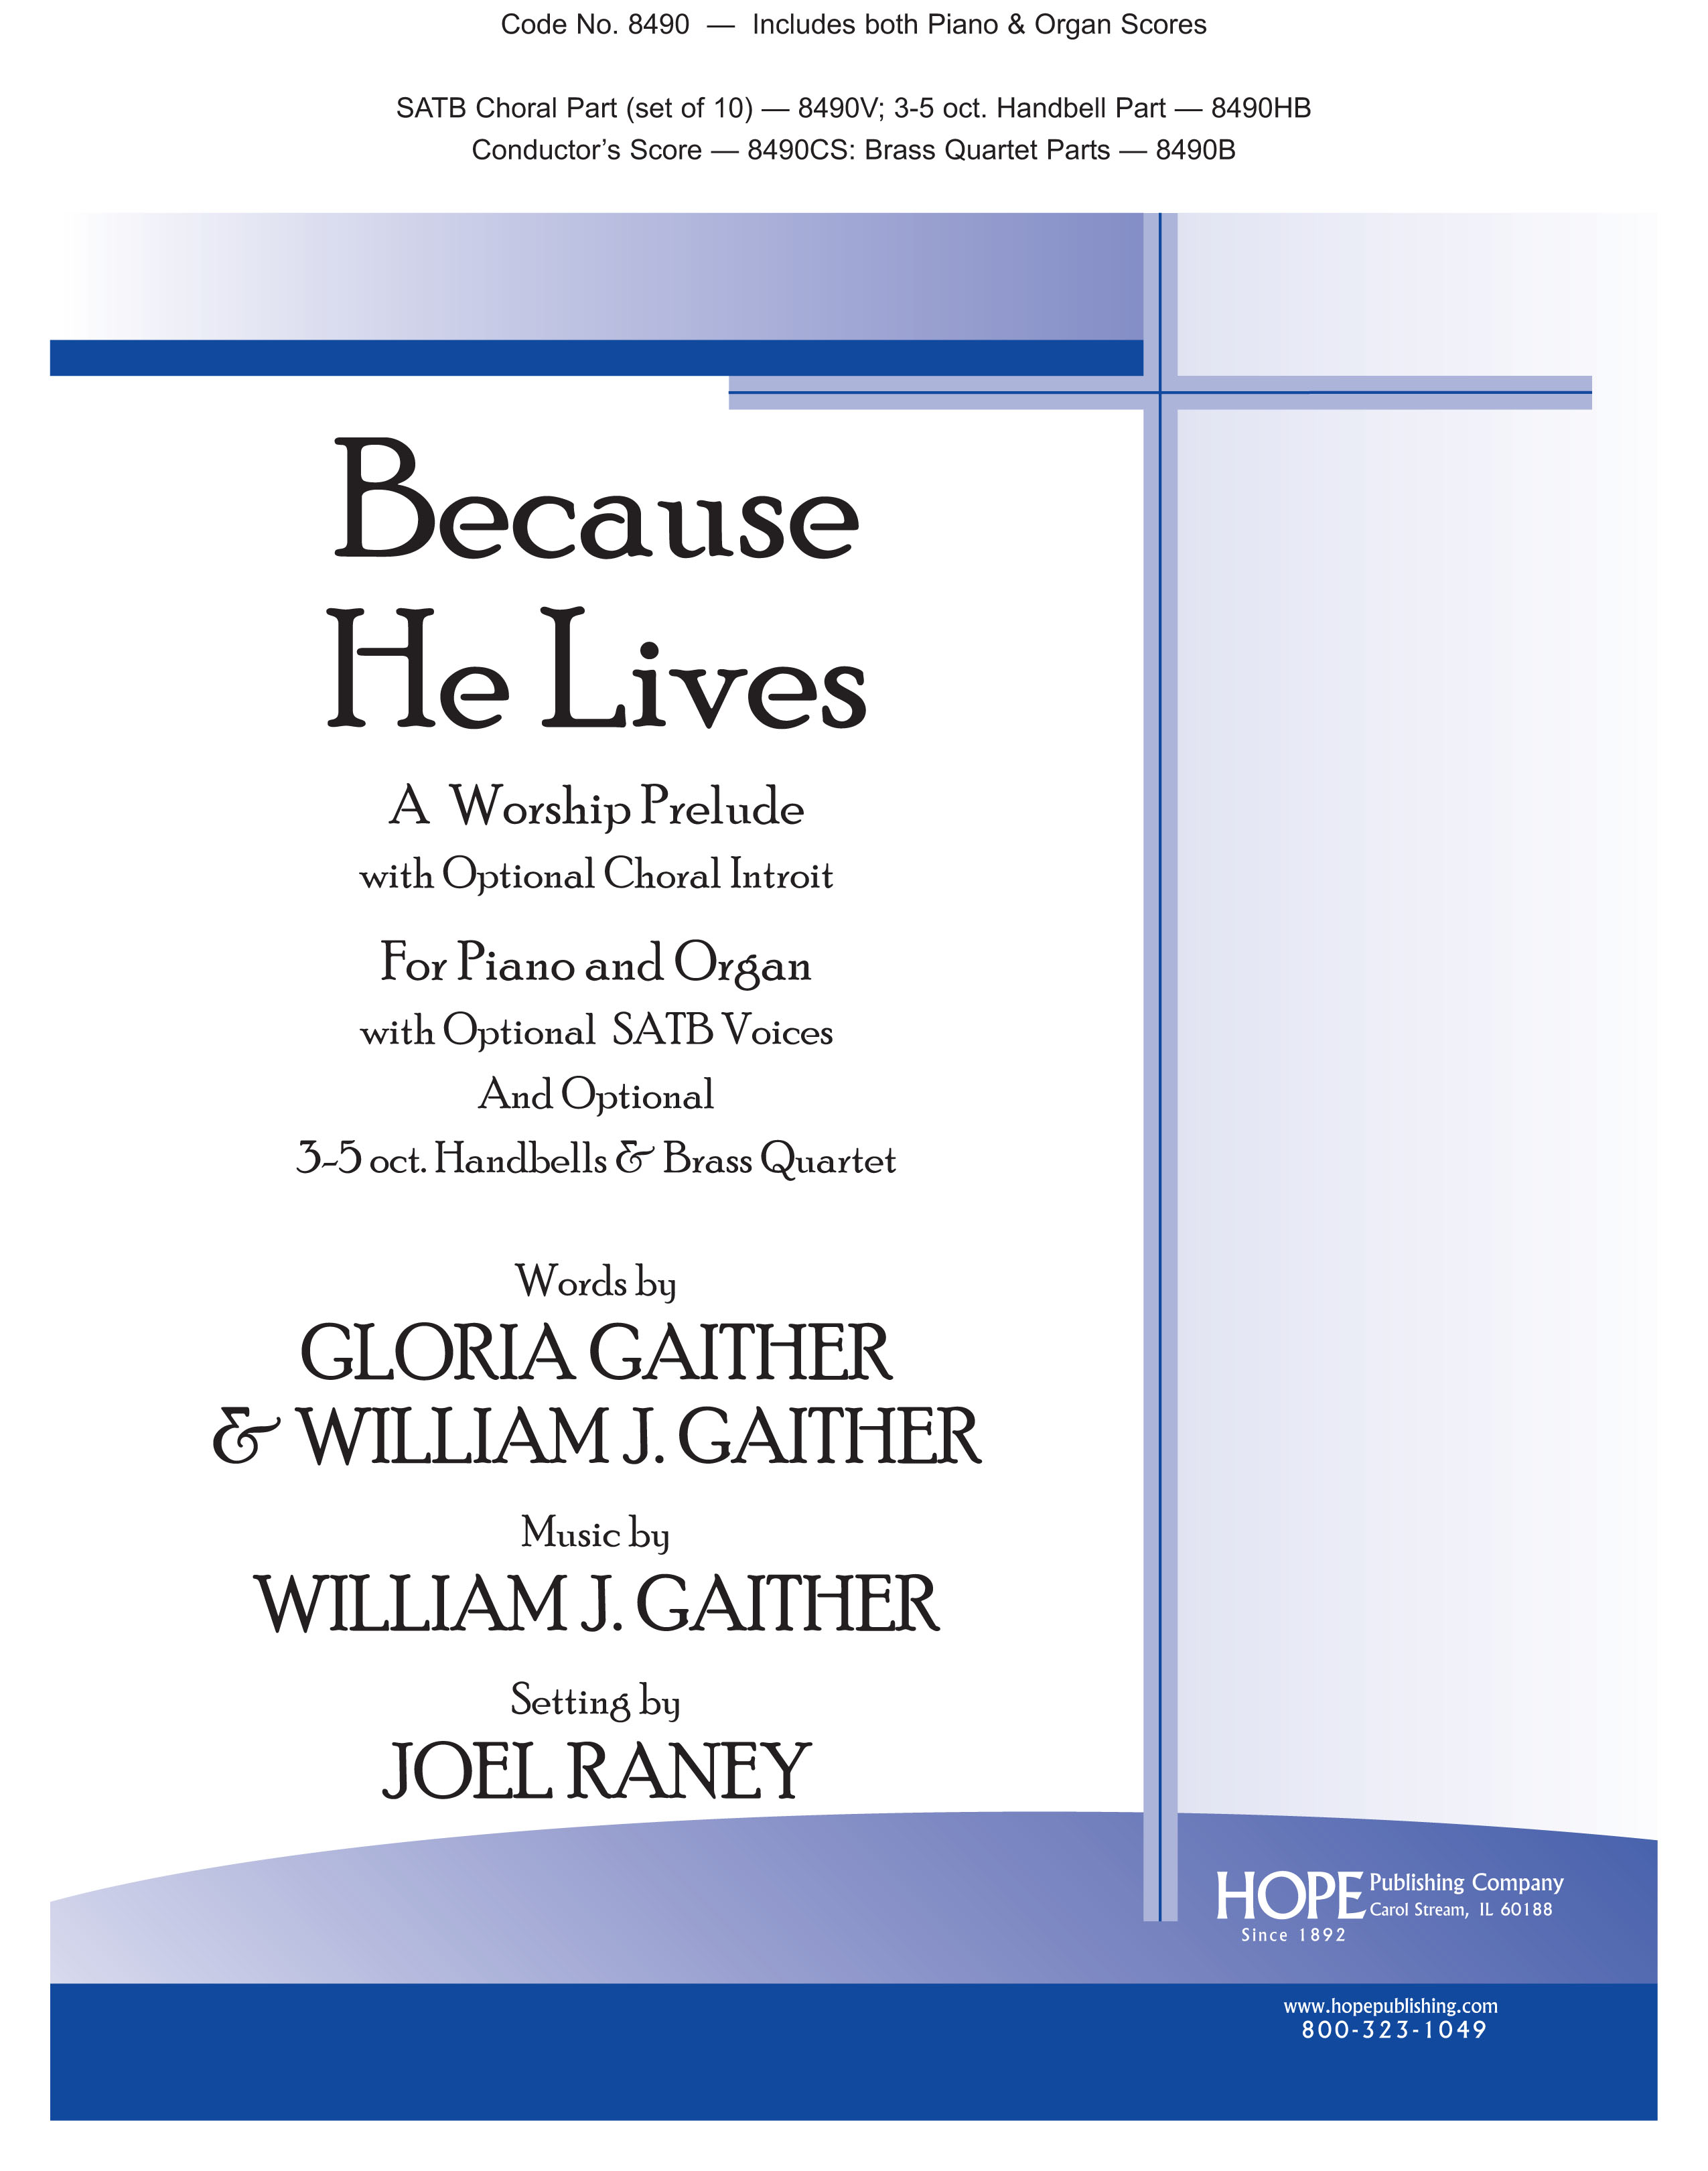 Because He Lives - Score Cover Image